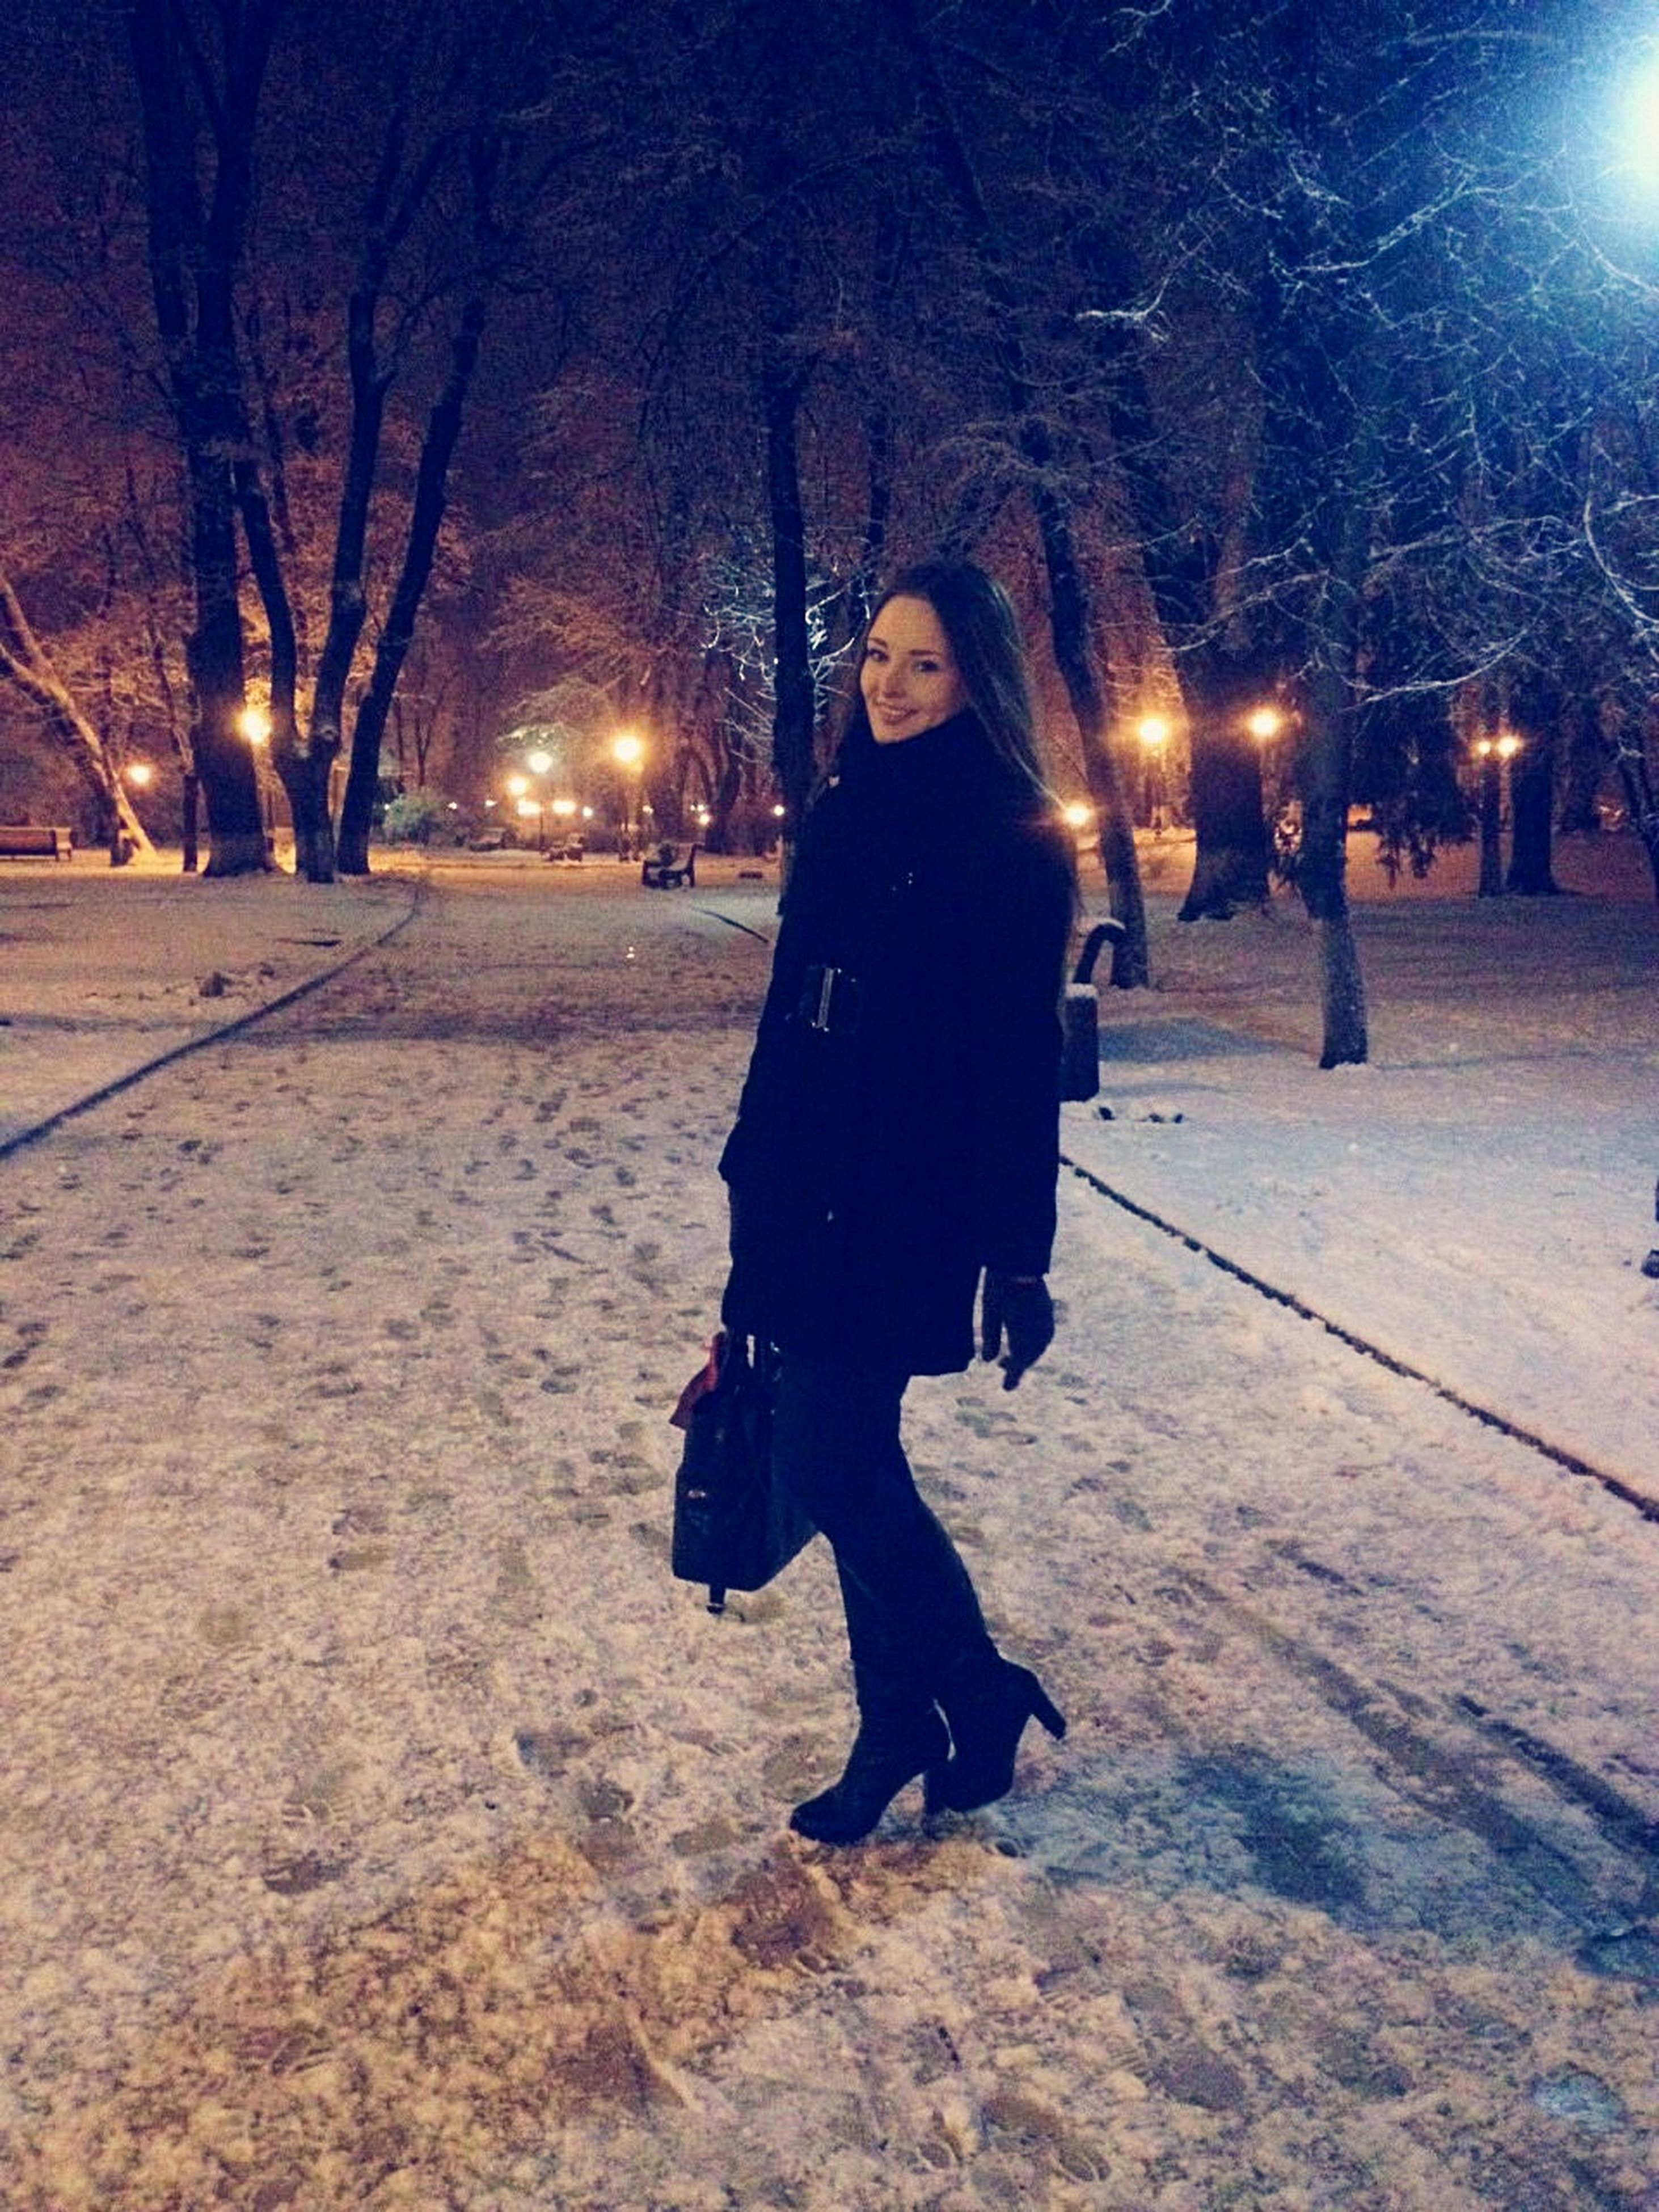 illuminated, night, lifestyles, full length, leisure activity, standing, winter, snow, front view, cold temperature, warm clothing, lighting equipment, casual clothing, season, street, rear view, walking, street light